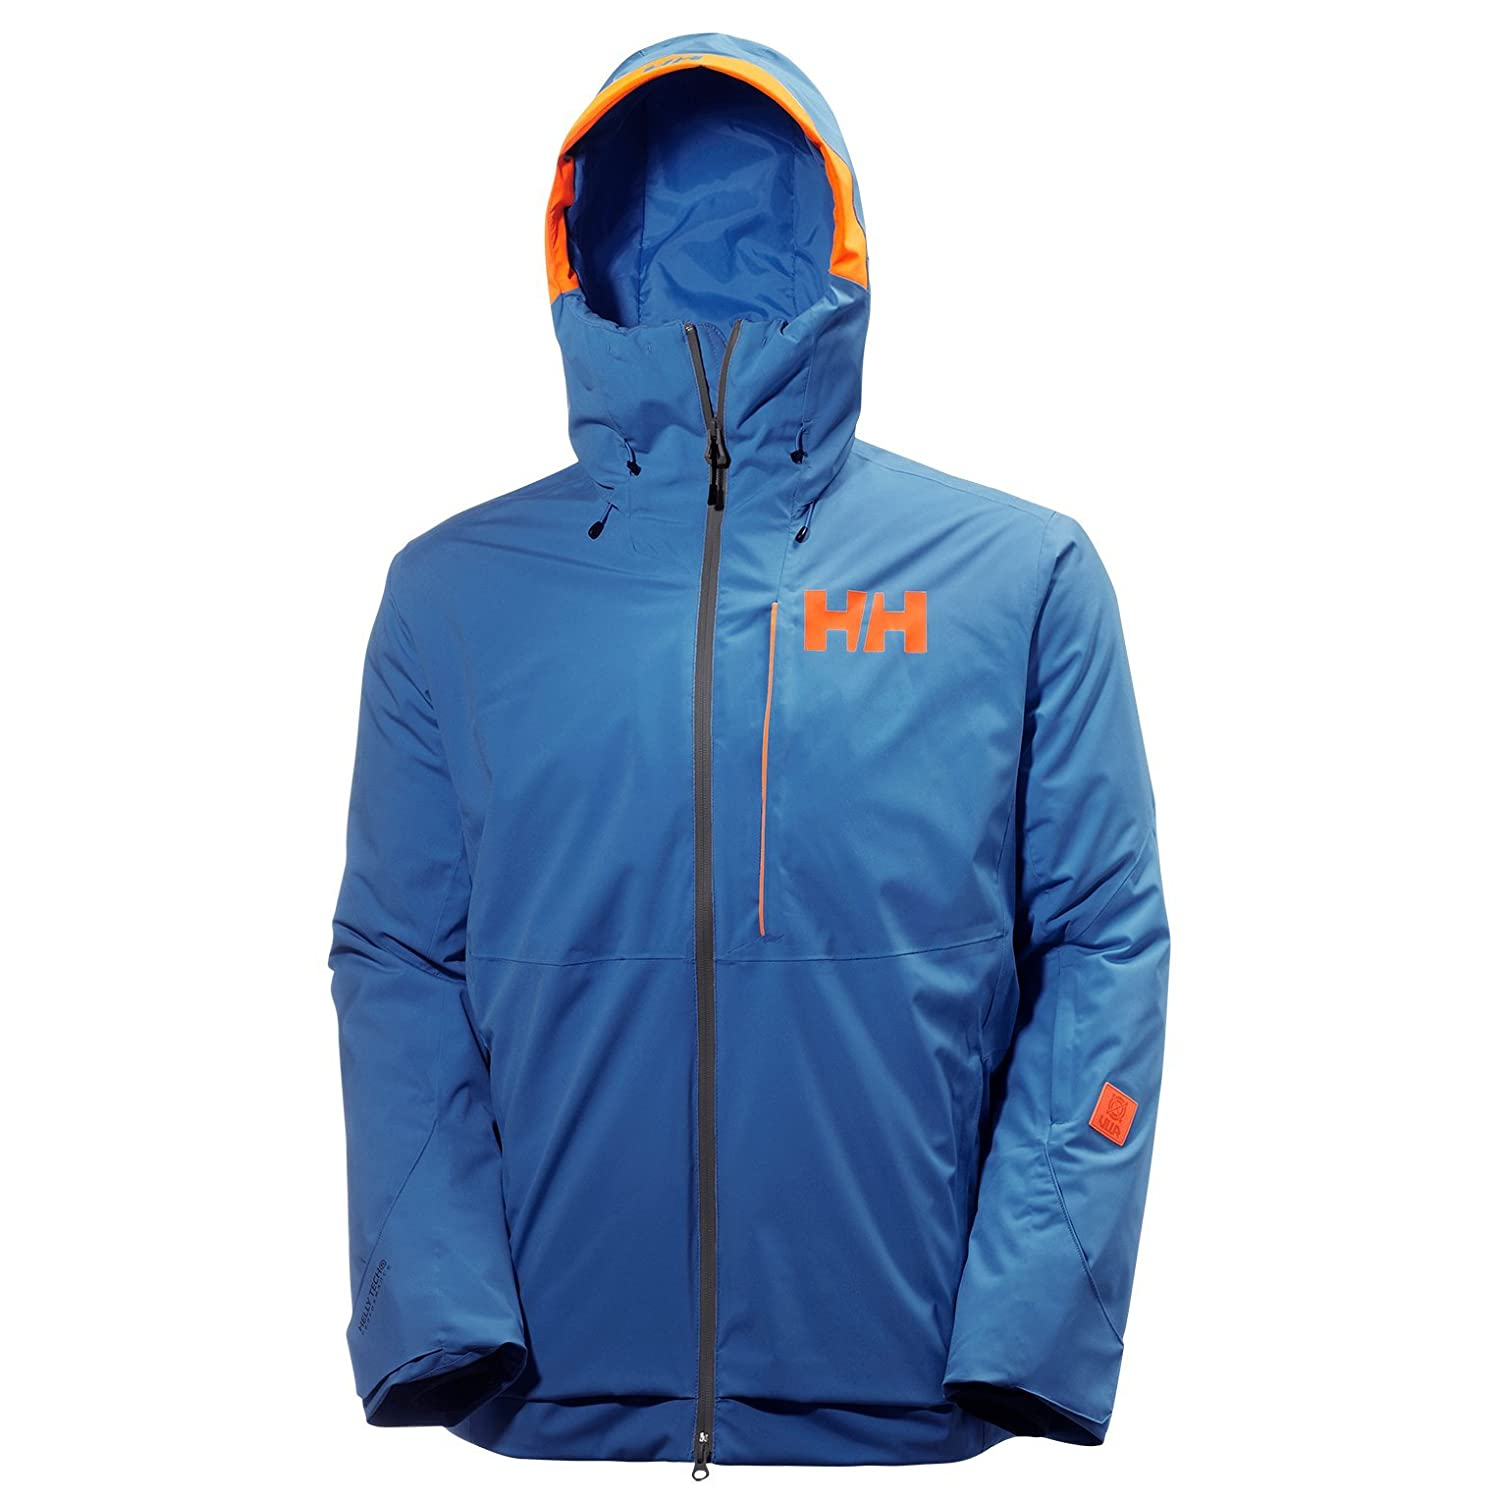 dc4c357783 Amazon.com : Helly Hansen Sogn Insulated Ski Jacket Mens : Sports & Outdoors